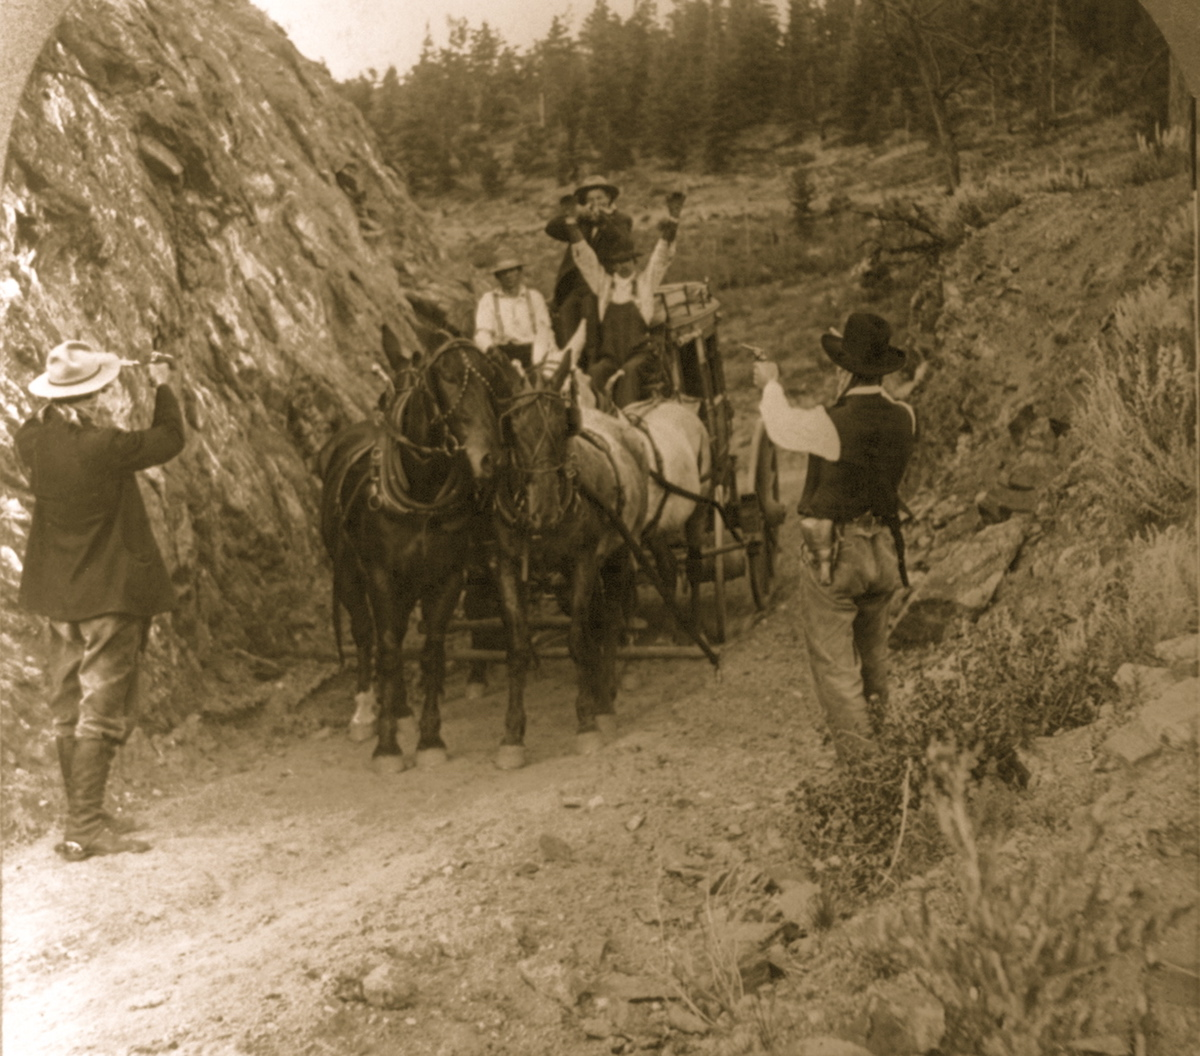 Wild West Stage Coach Robbery image, circa 1911